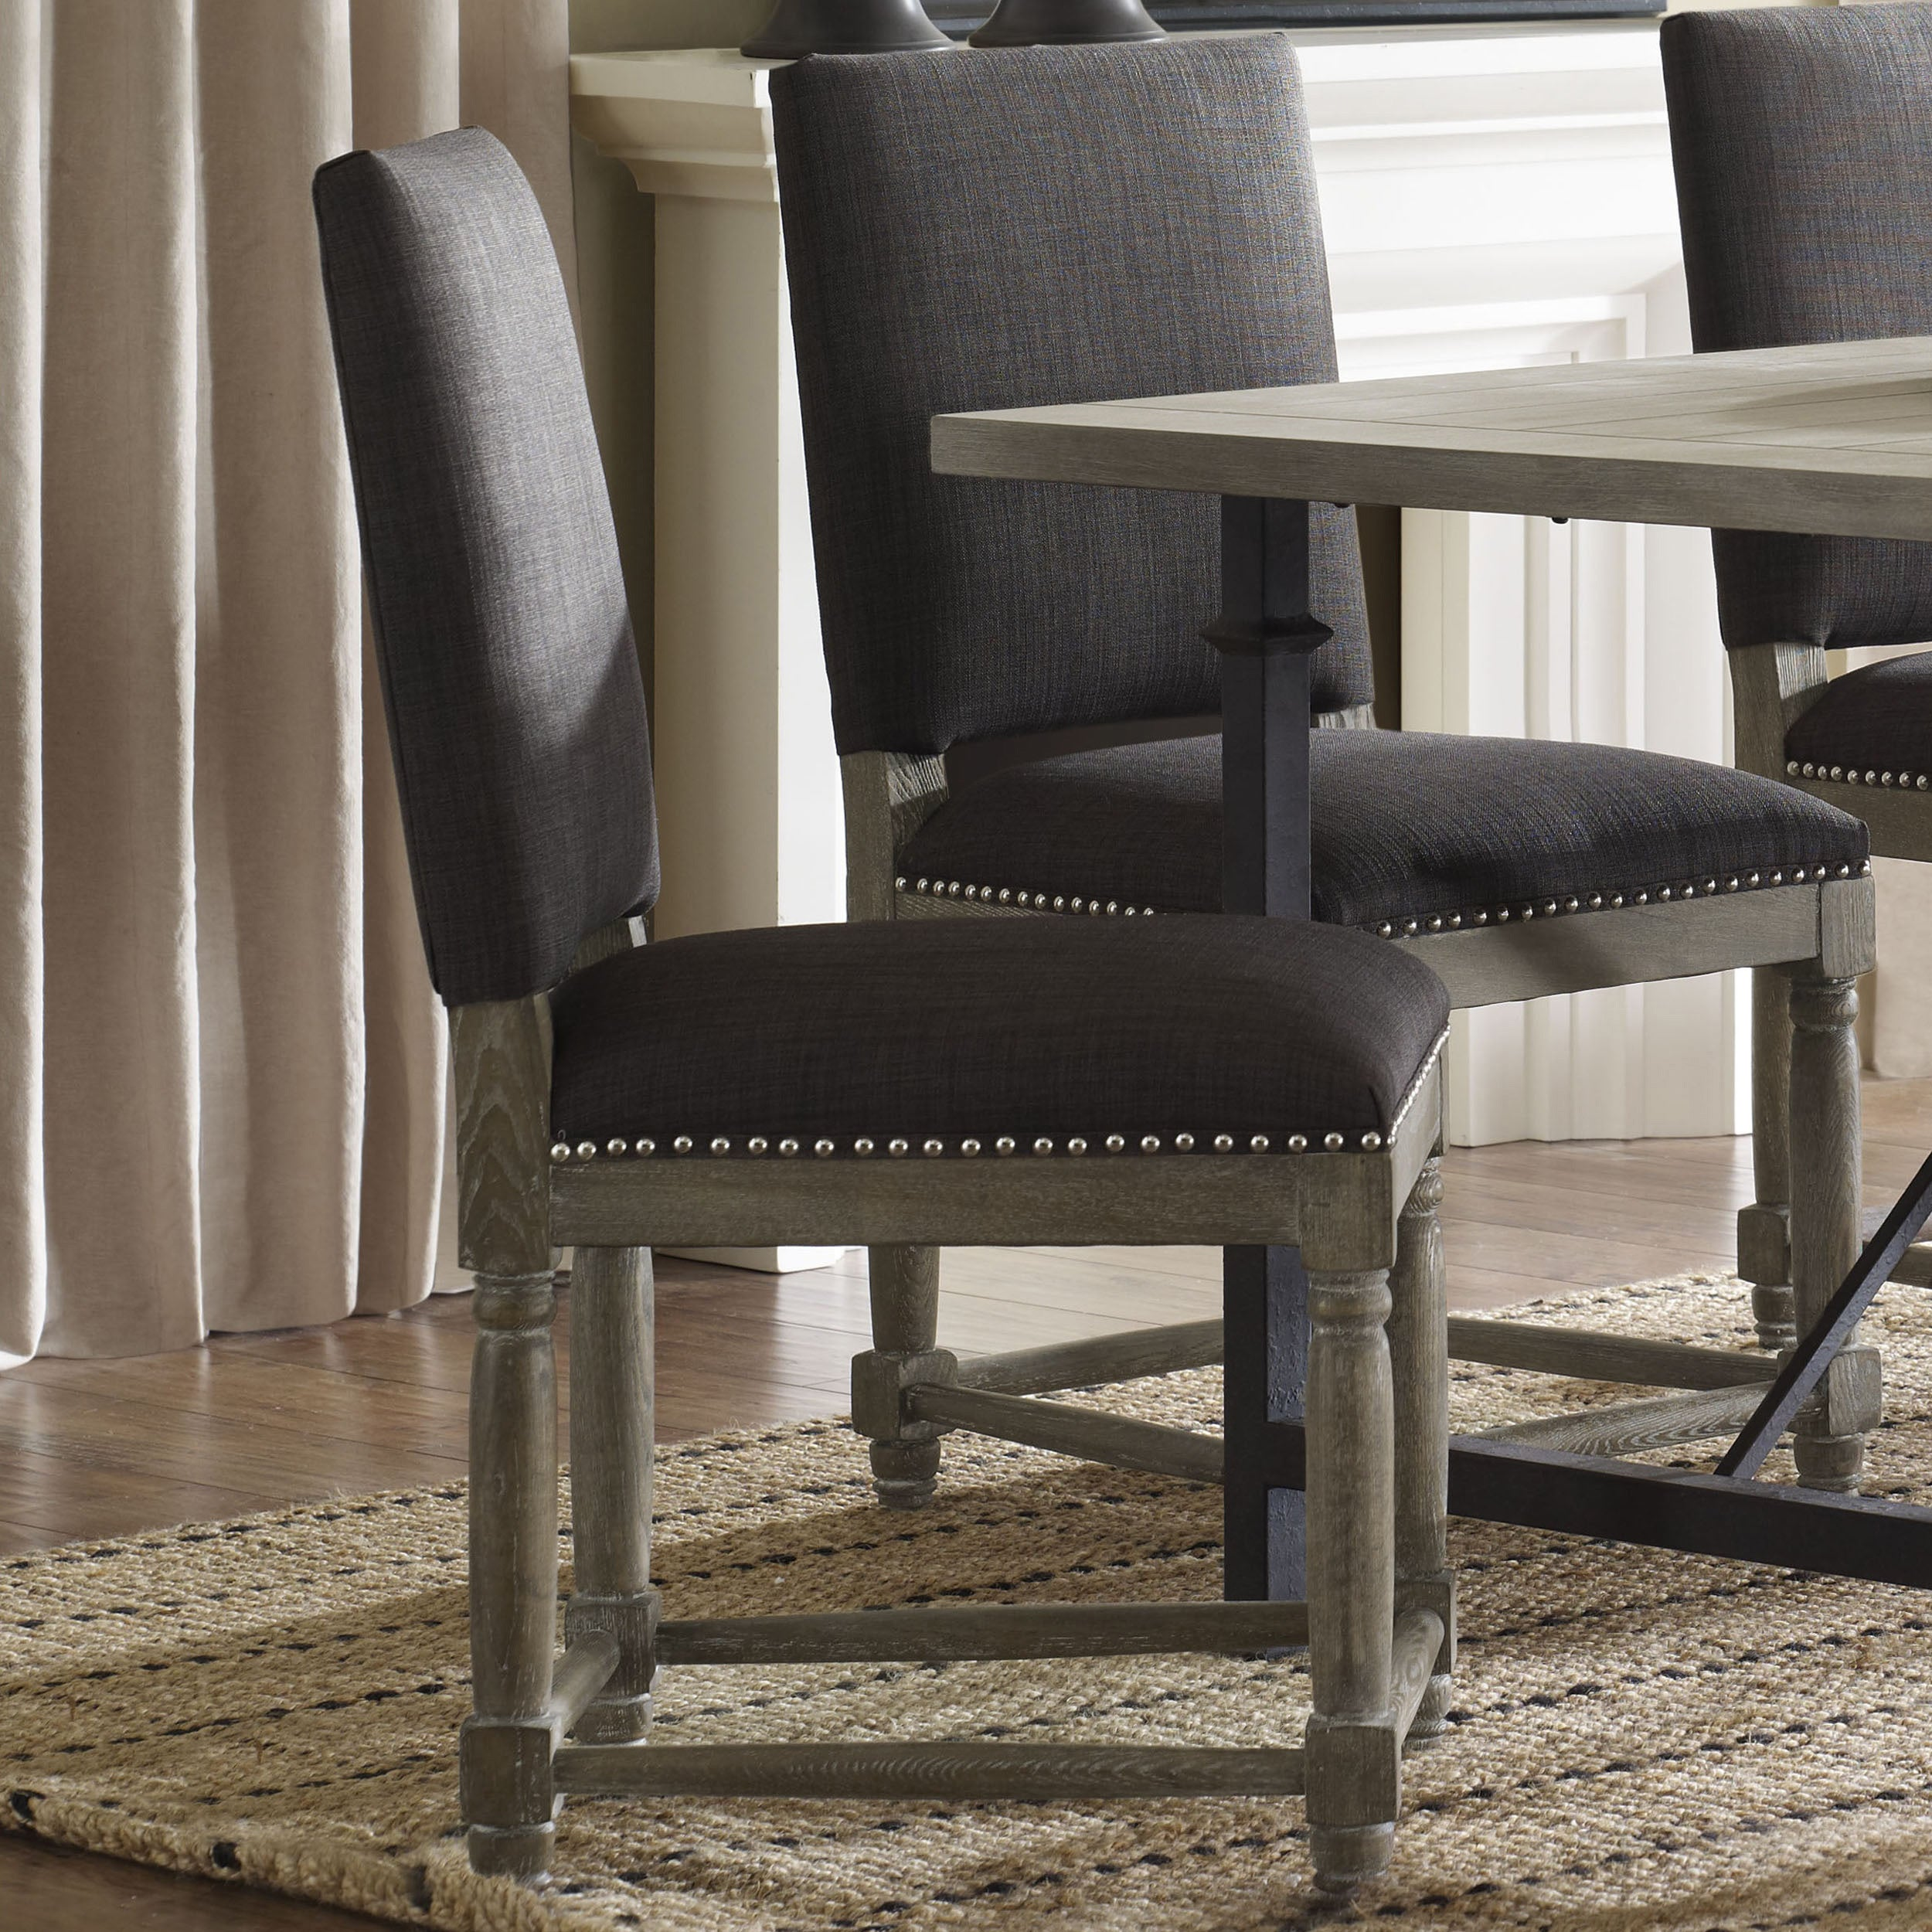 Grey Dining Room Chairs: Classic Design Dinning Chairs Elegant Gray Rustic